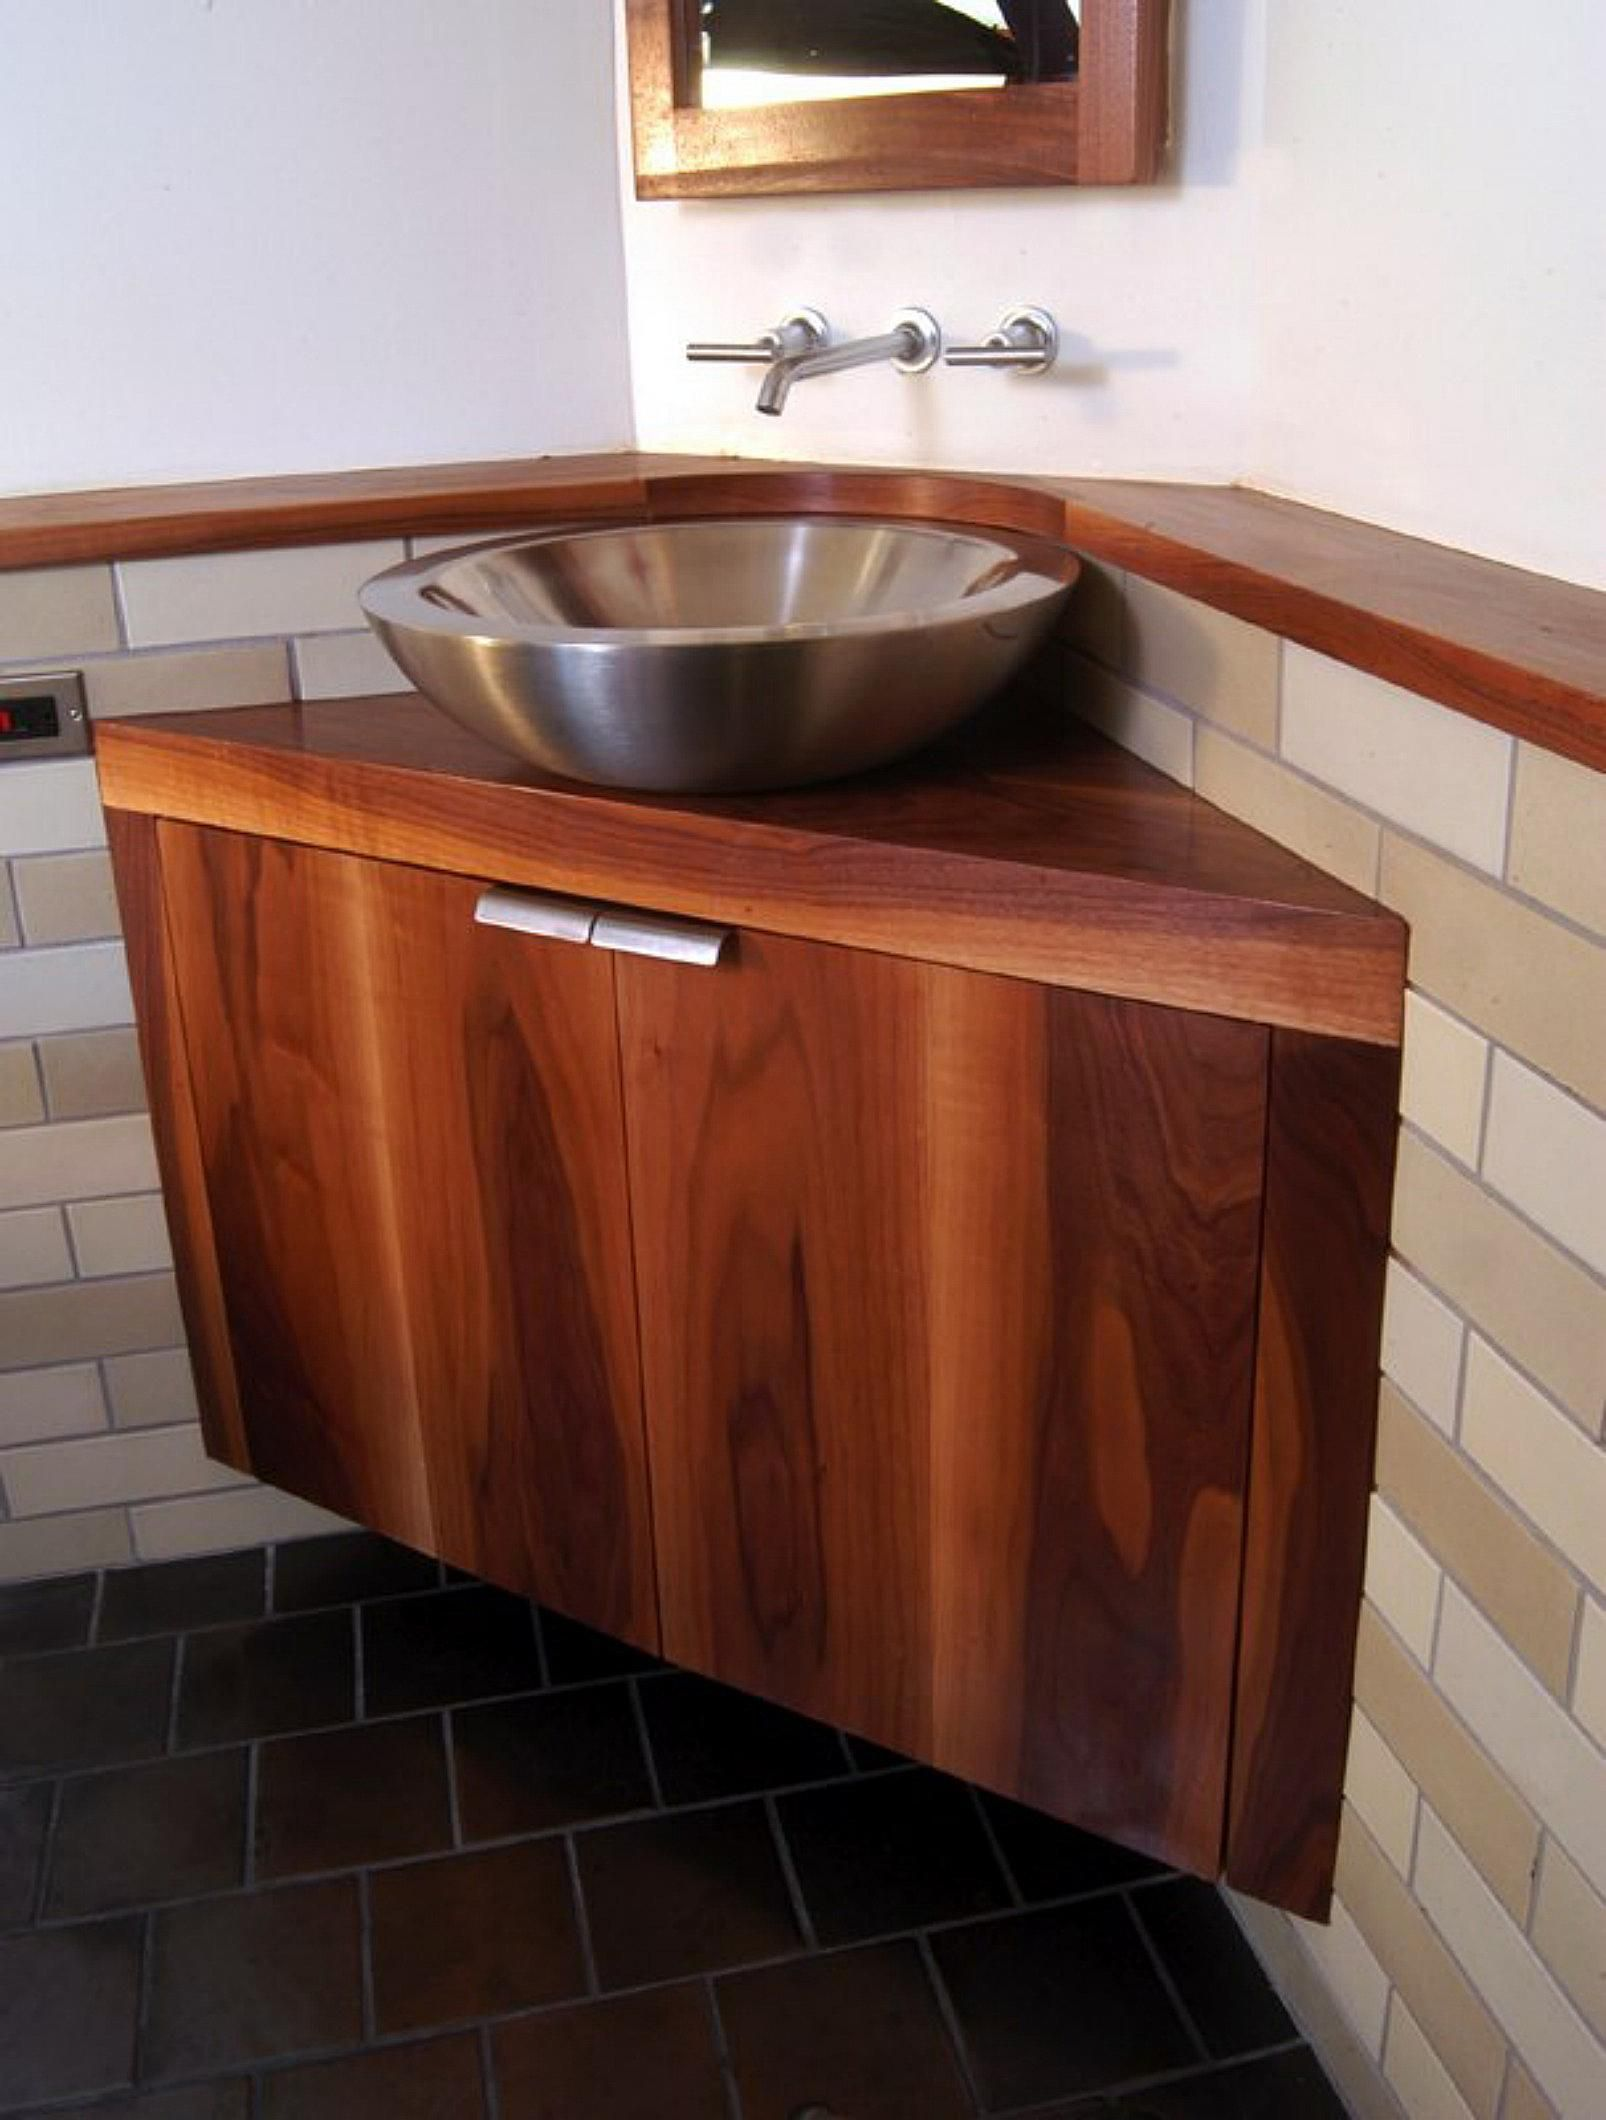 space saver bathroom sinks corner sinks are small bath space savers 20608